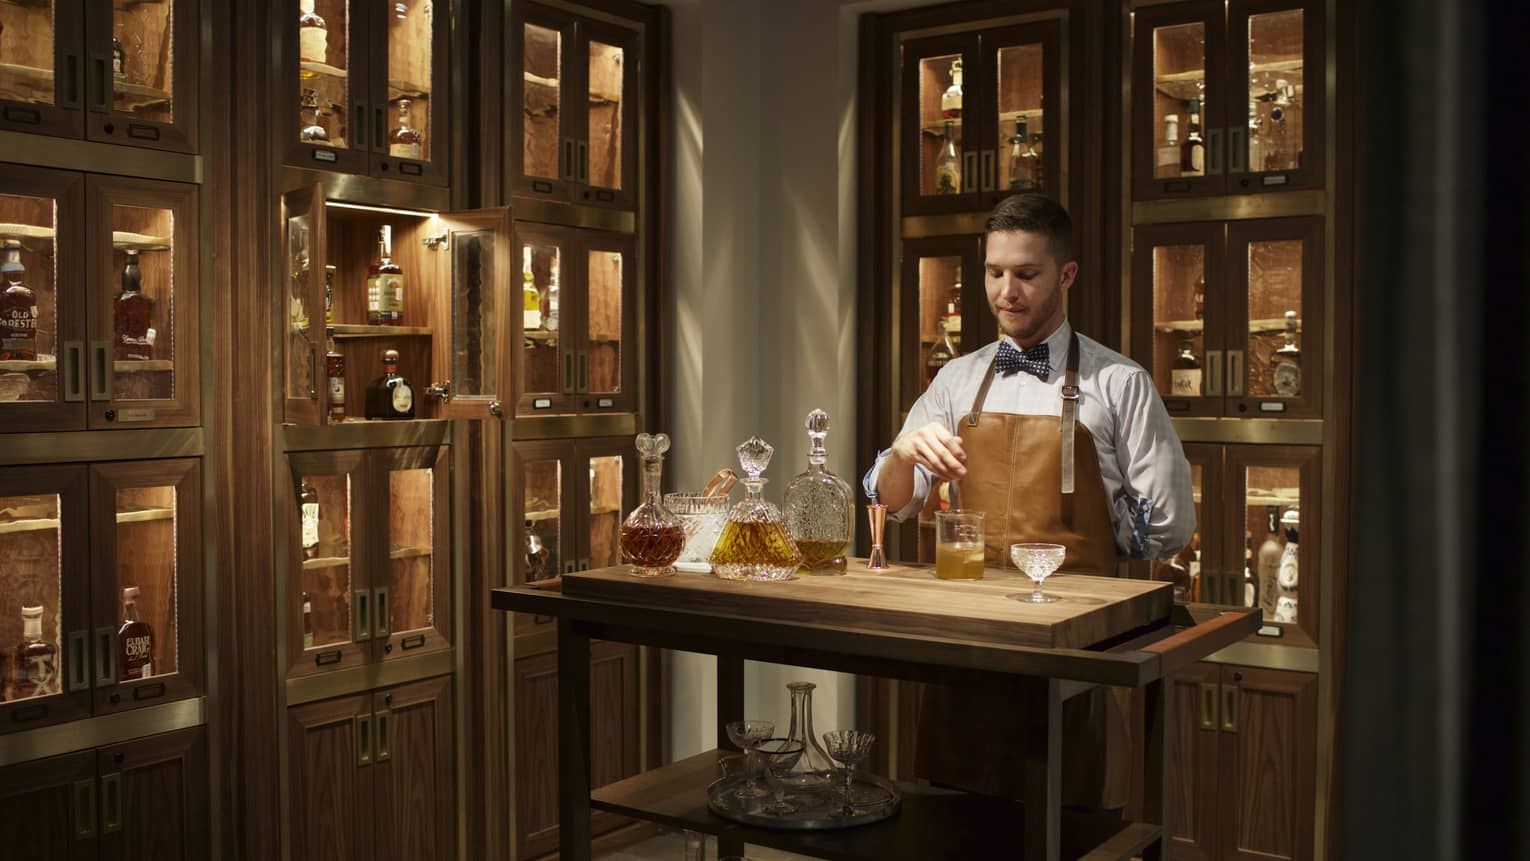 Bayou & Bottle mixologist in apron stirs bourbon cocktail, surrounded by illuminated display cases with bottles